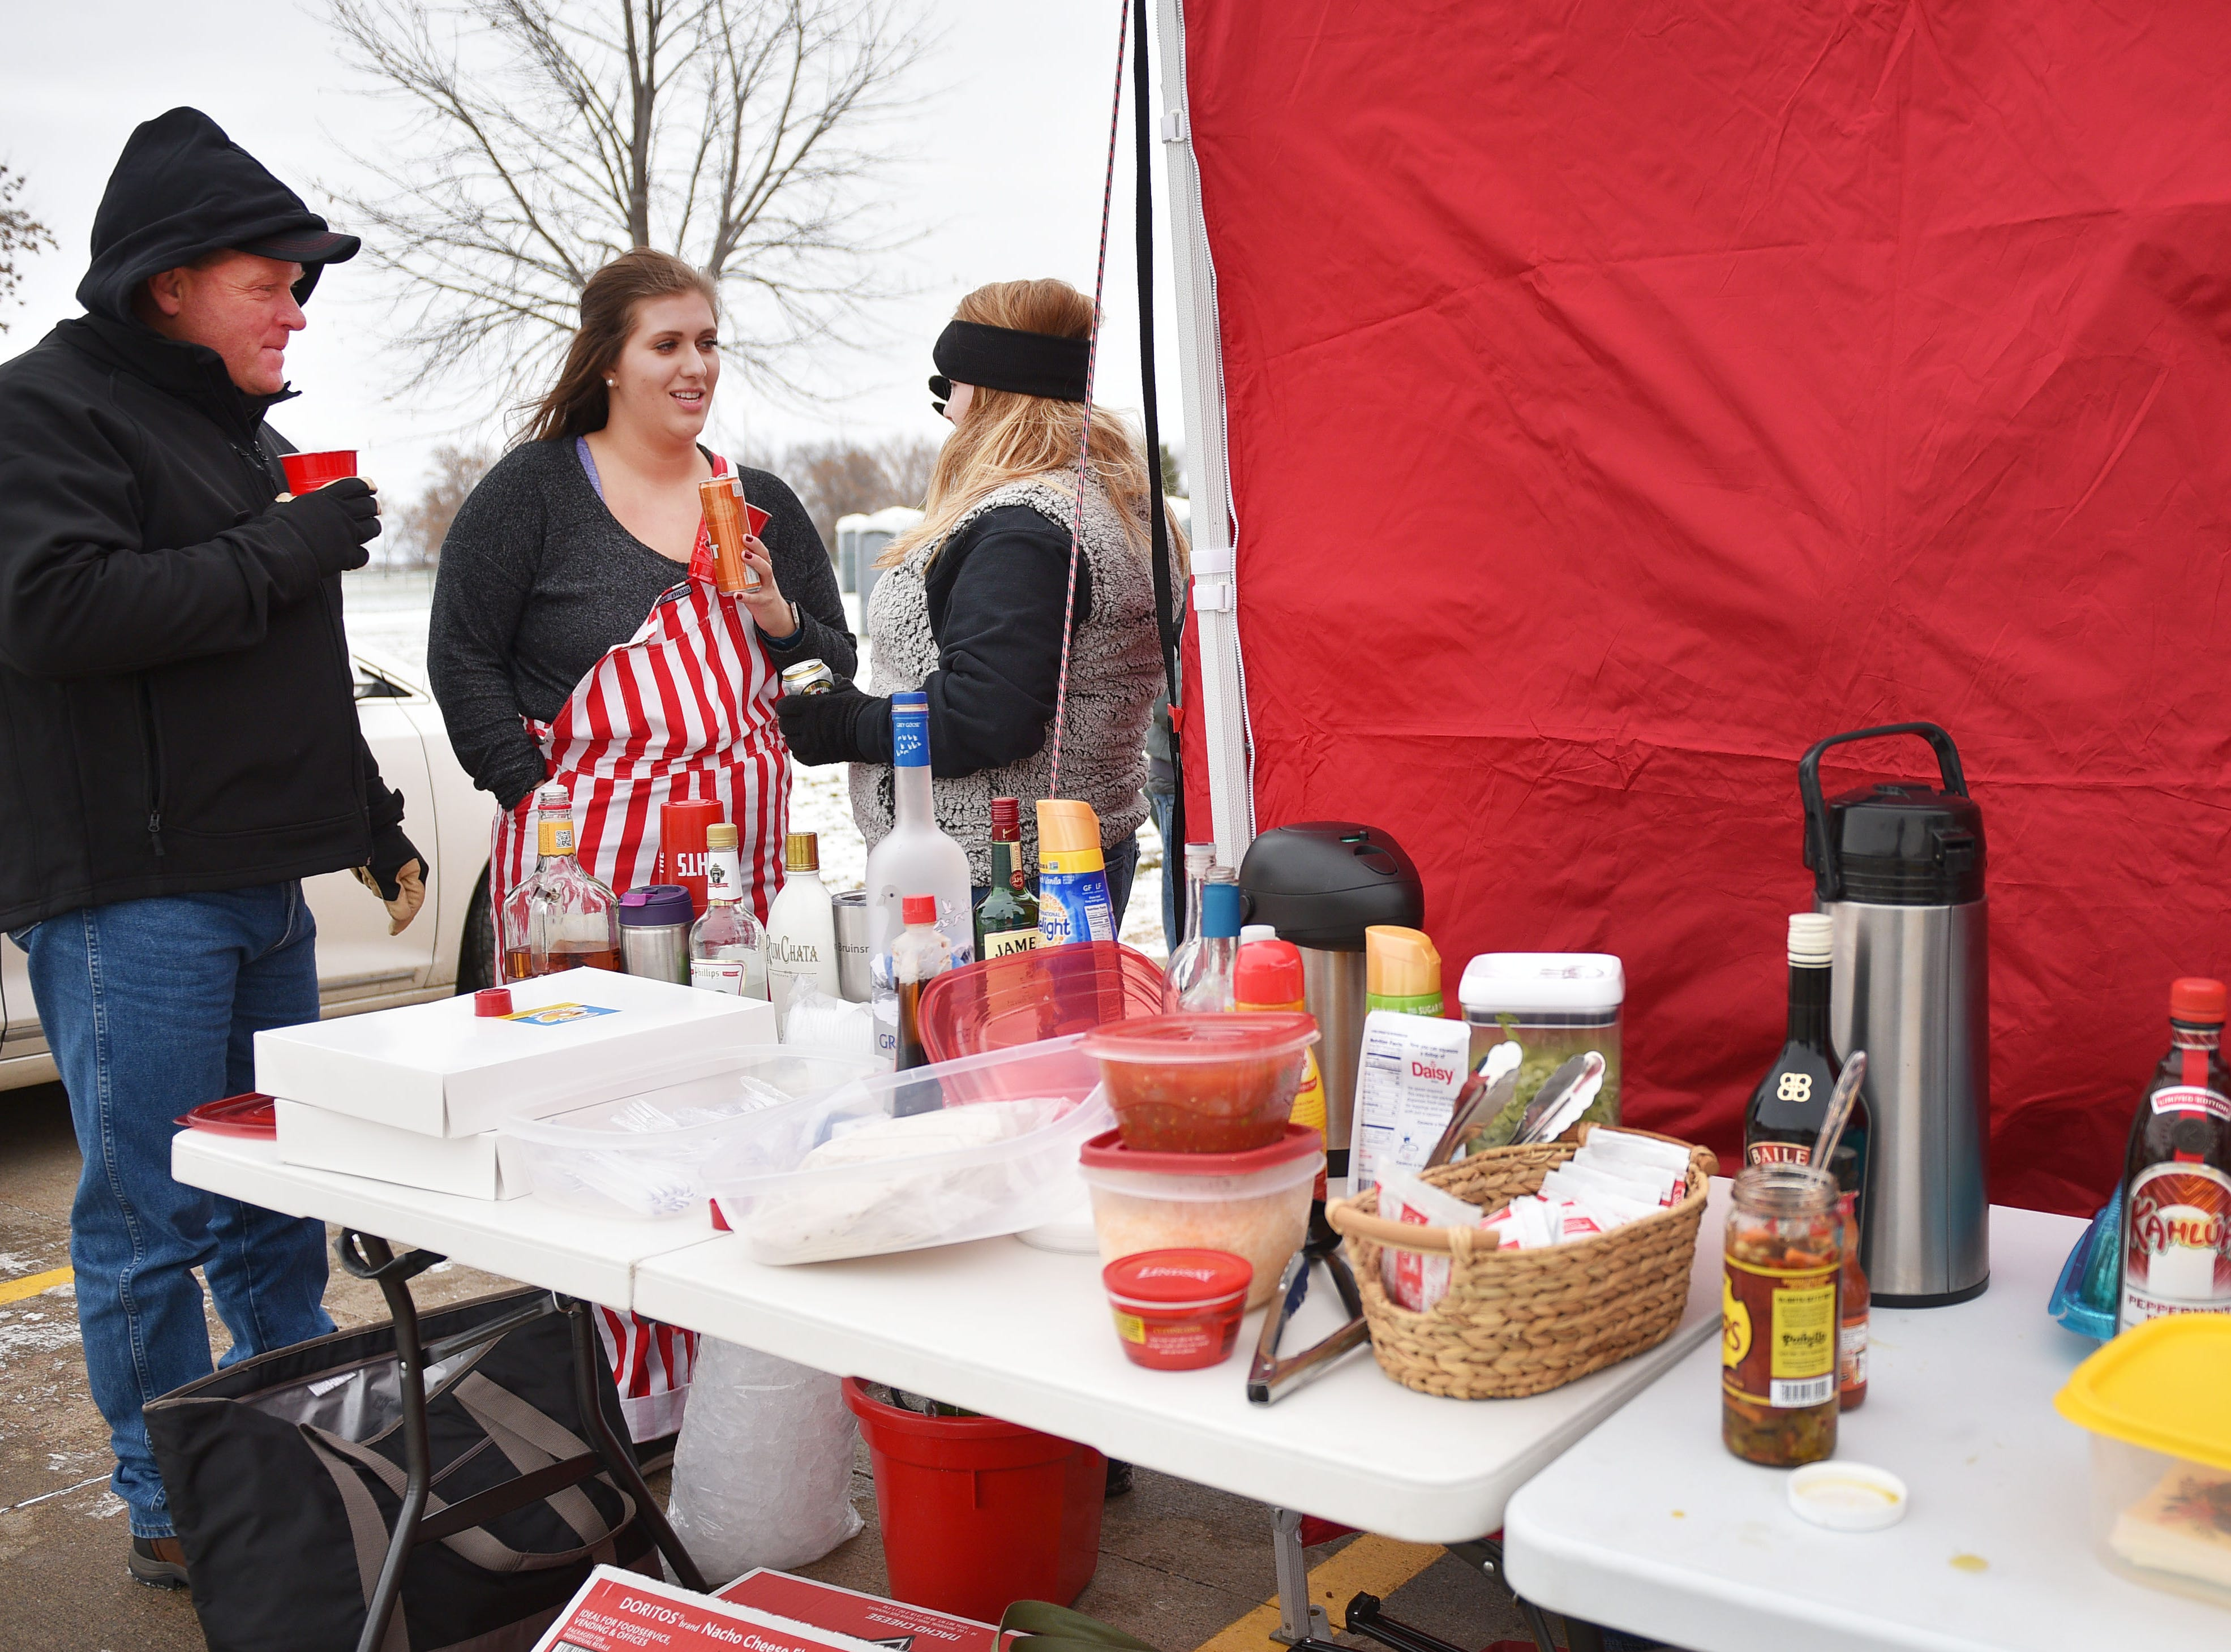 USD fans Scott Simons, from left, Zoey O'Brien and Leah Jeseritz tailgate before the game against Western Illinois Saturday, Nov. 10, at the DakotaDome in Vermillion.